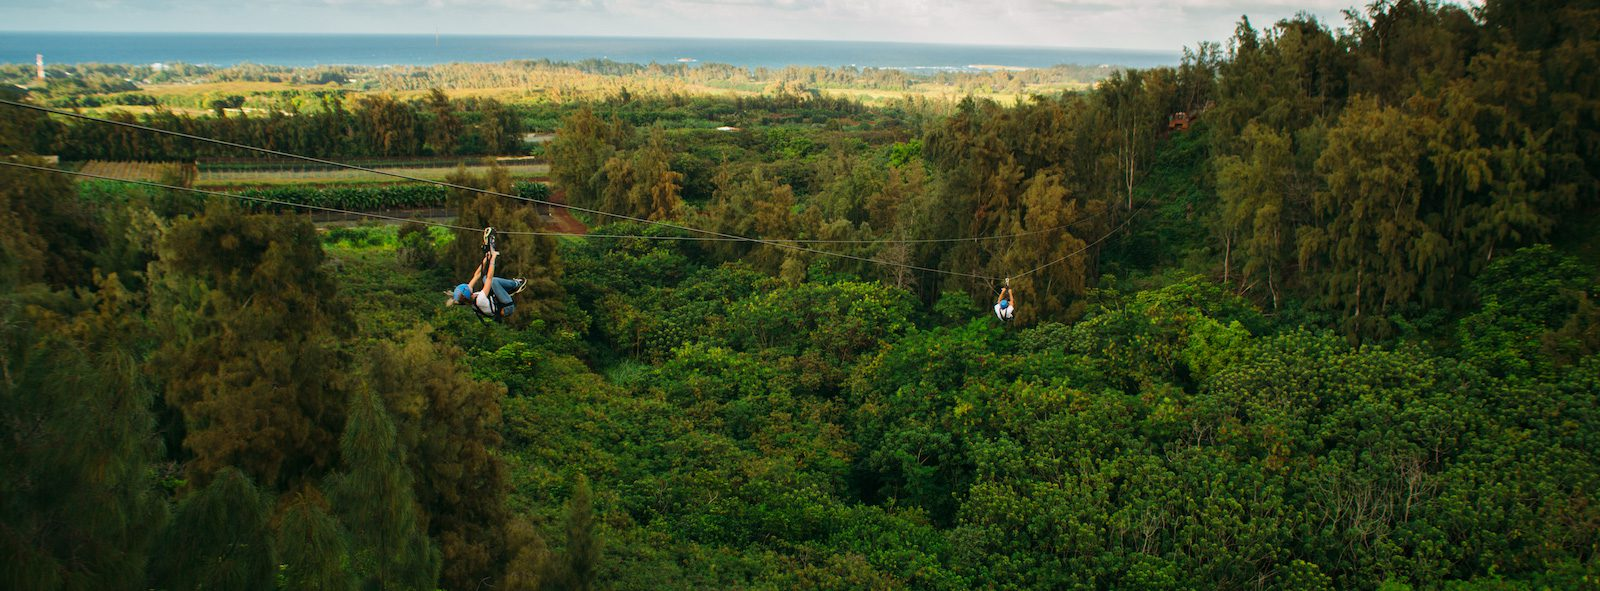 4 Things You'll Gain from Our Oahu Zipline Tour